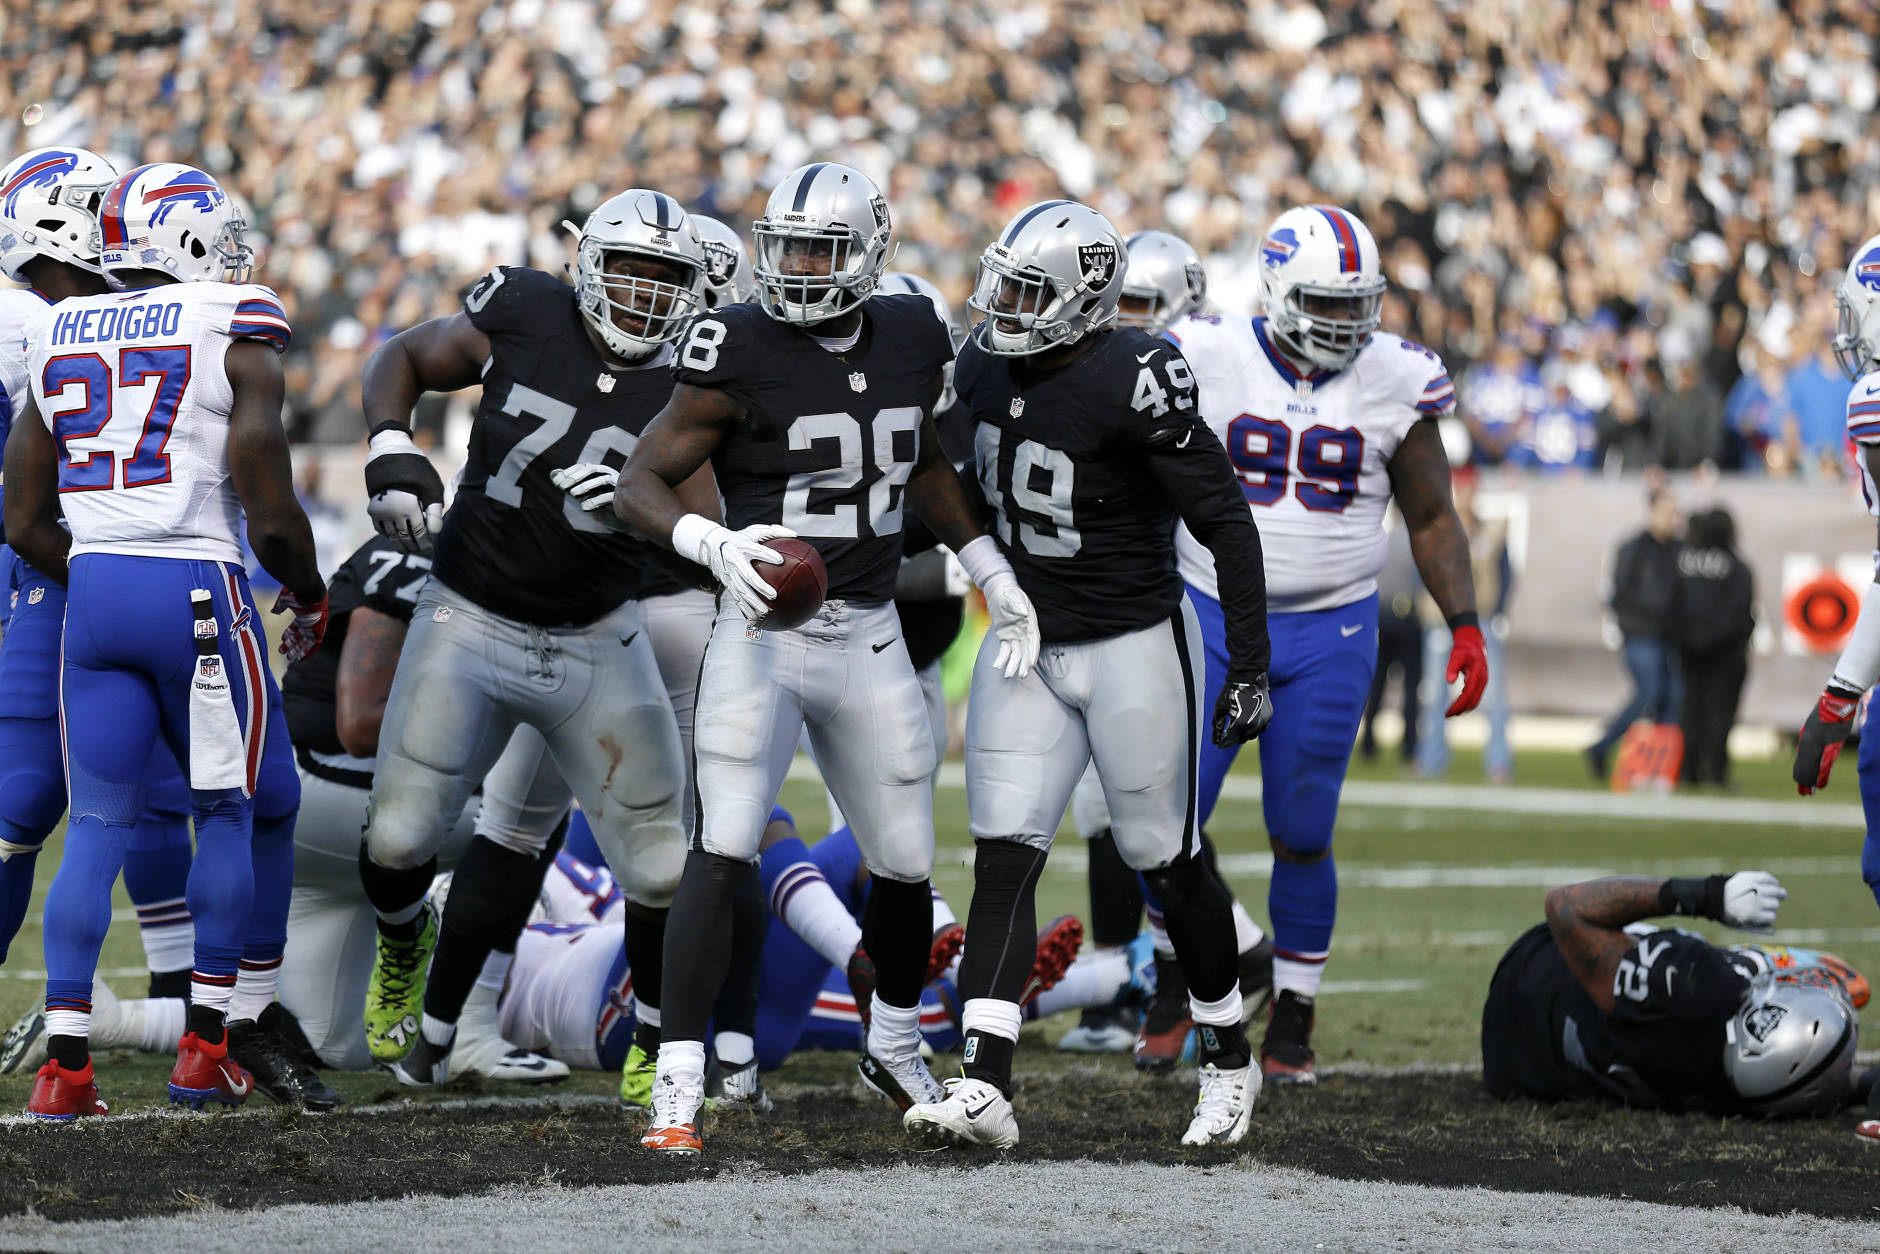 Oakland Raiders running back Latavius Murray (28) celebrates after running for a touchdown with running back Jamize Olawale (49) and offensive guard Kelechi Osemele (70) against the Buffalo Bills during the second half of an NFL football game in Oakland, Calif., Sunday, Dec. 4, 2016. (AP Photo/D. Ross Cameron)